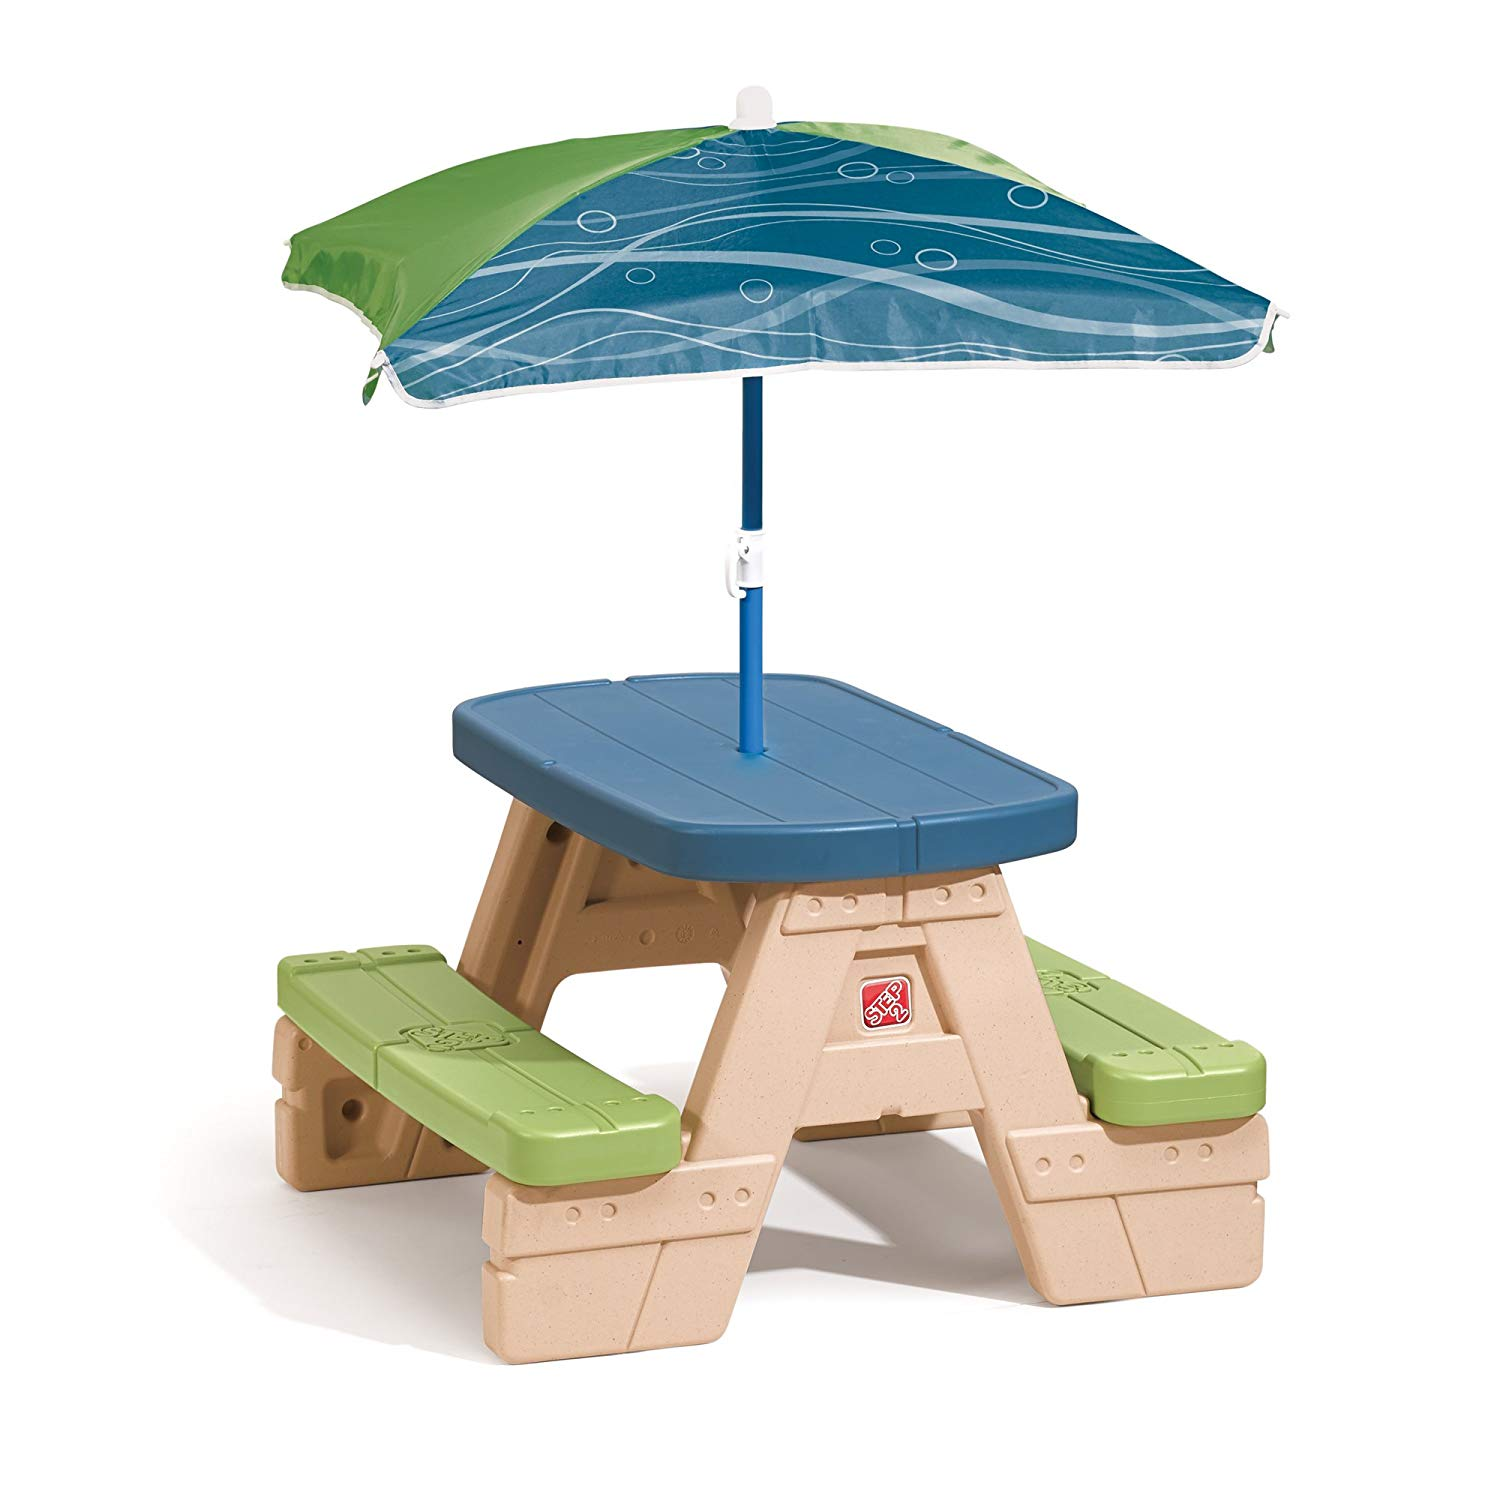 kindergarten furniture amazon.com: step2 sit and play picnic table for children with umbrella: toys & EOLJOQZQ